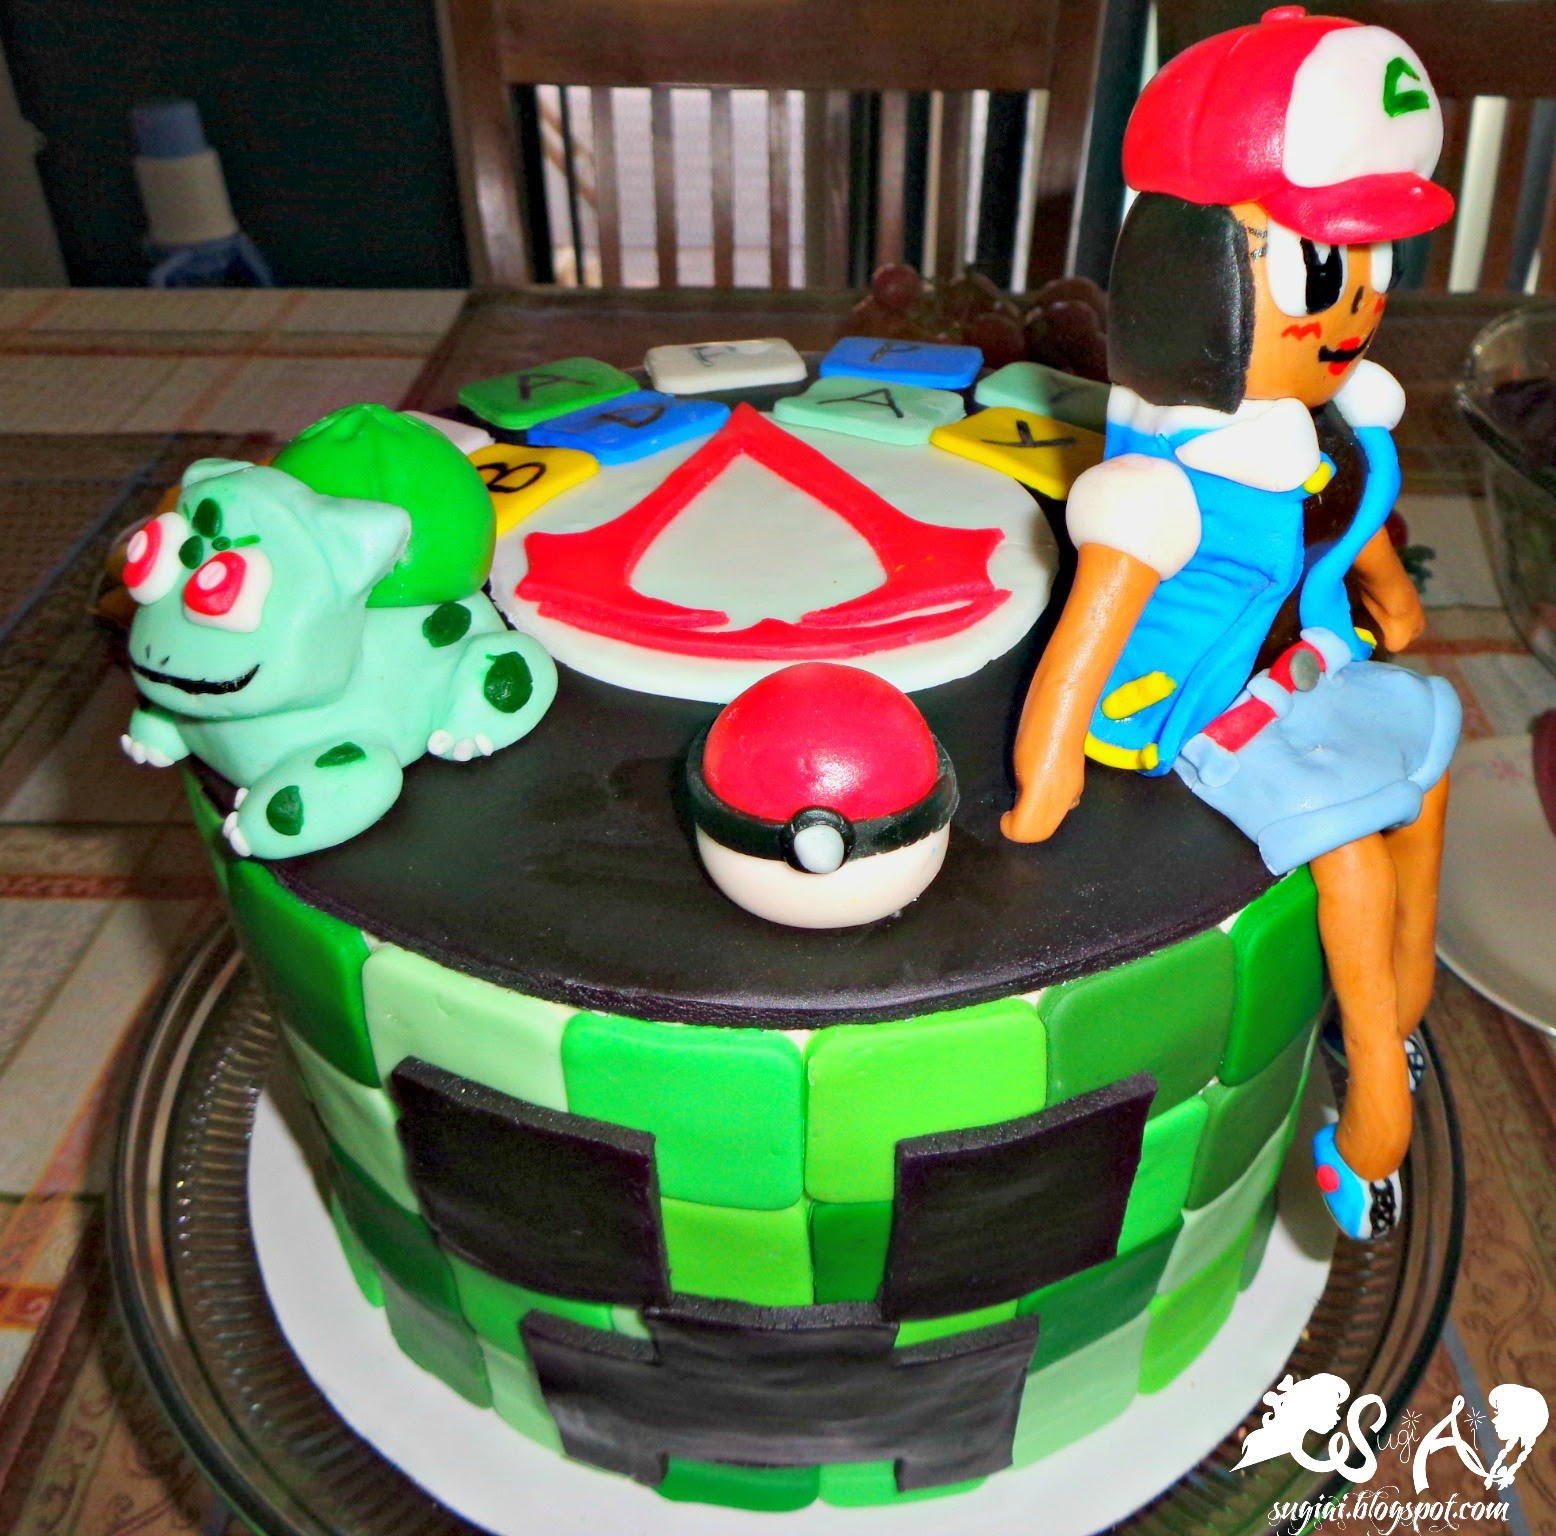 SugiAi Happy St Patricks Day And A Video Game Birthday Cake - Cake birthday games